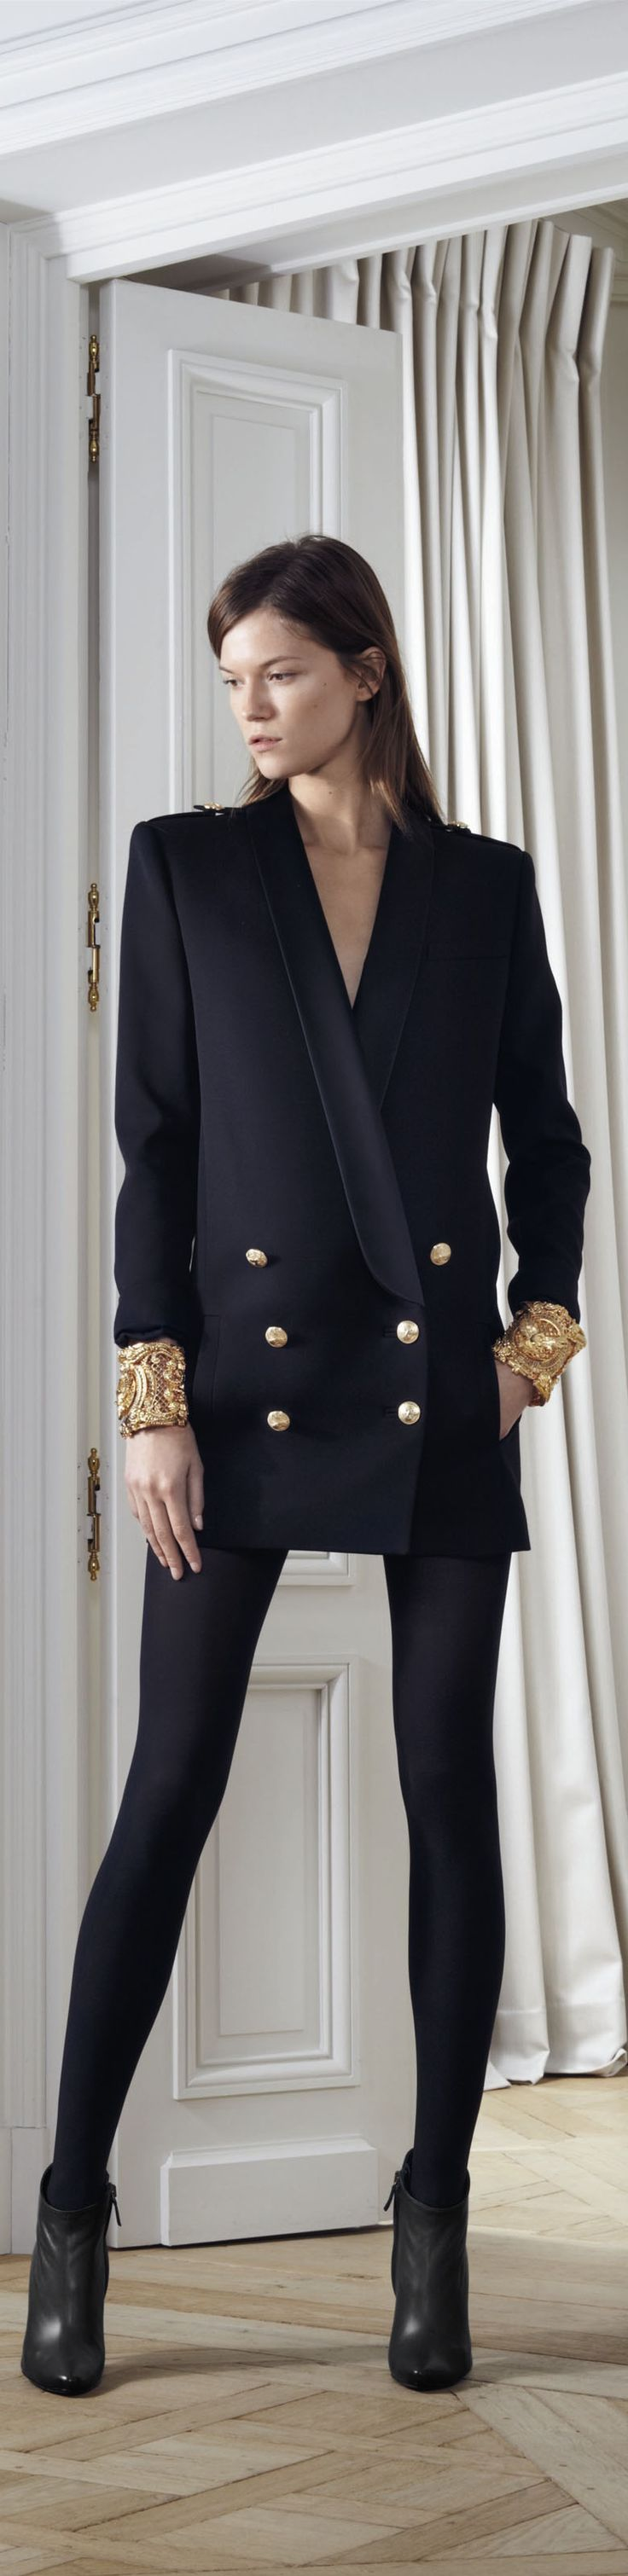 ✜ Balmain - Pre-Fall 2012 2013 RTW ✜  http://www.vogue.it/en/shows/show/fw-12-13-pre-fall/balmain